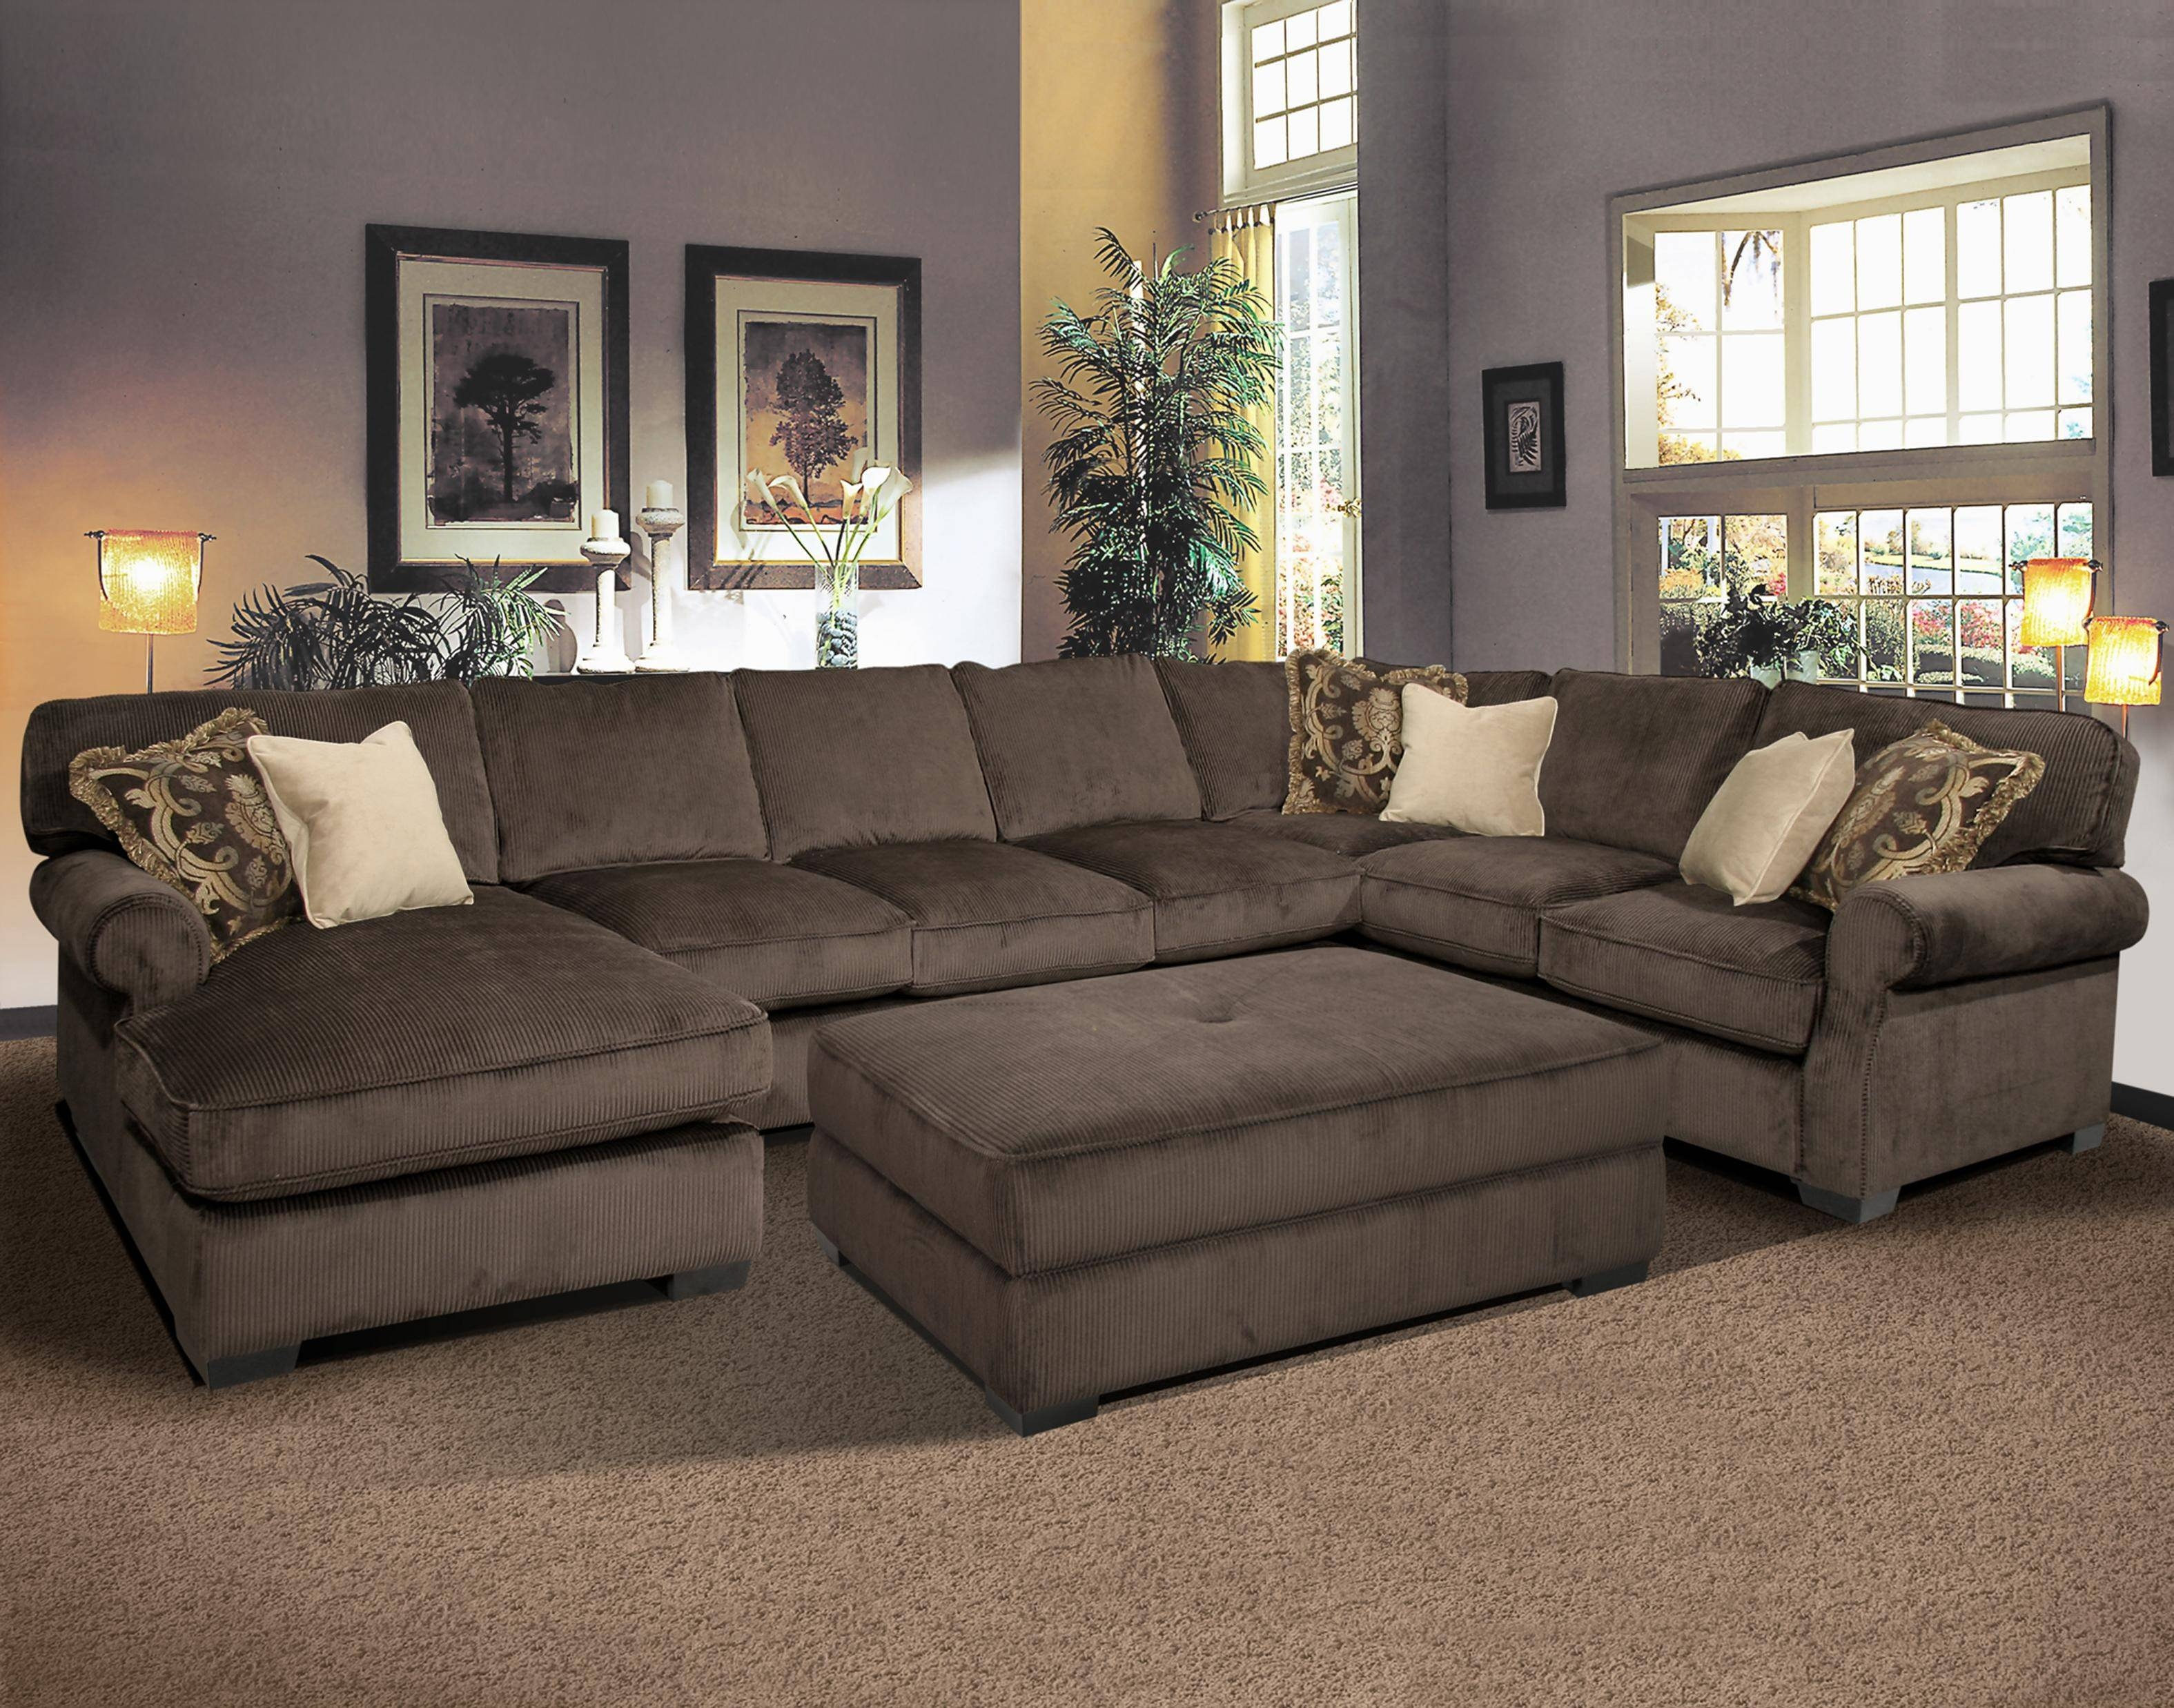 Sofas Center : Cozy Sectional Sofa With Chaise And Ottoman About pertaining to Goose Down Sectional Sofa (Image 12 of 25)